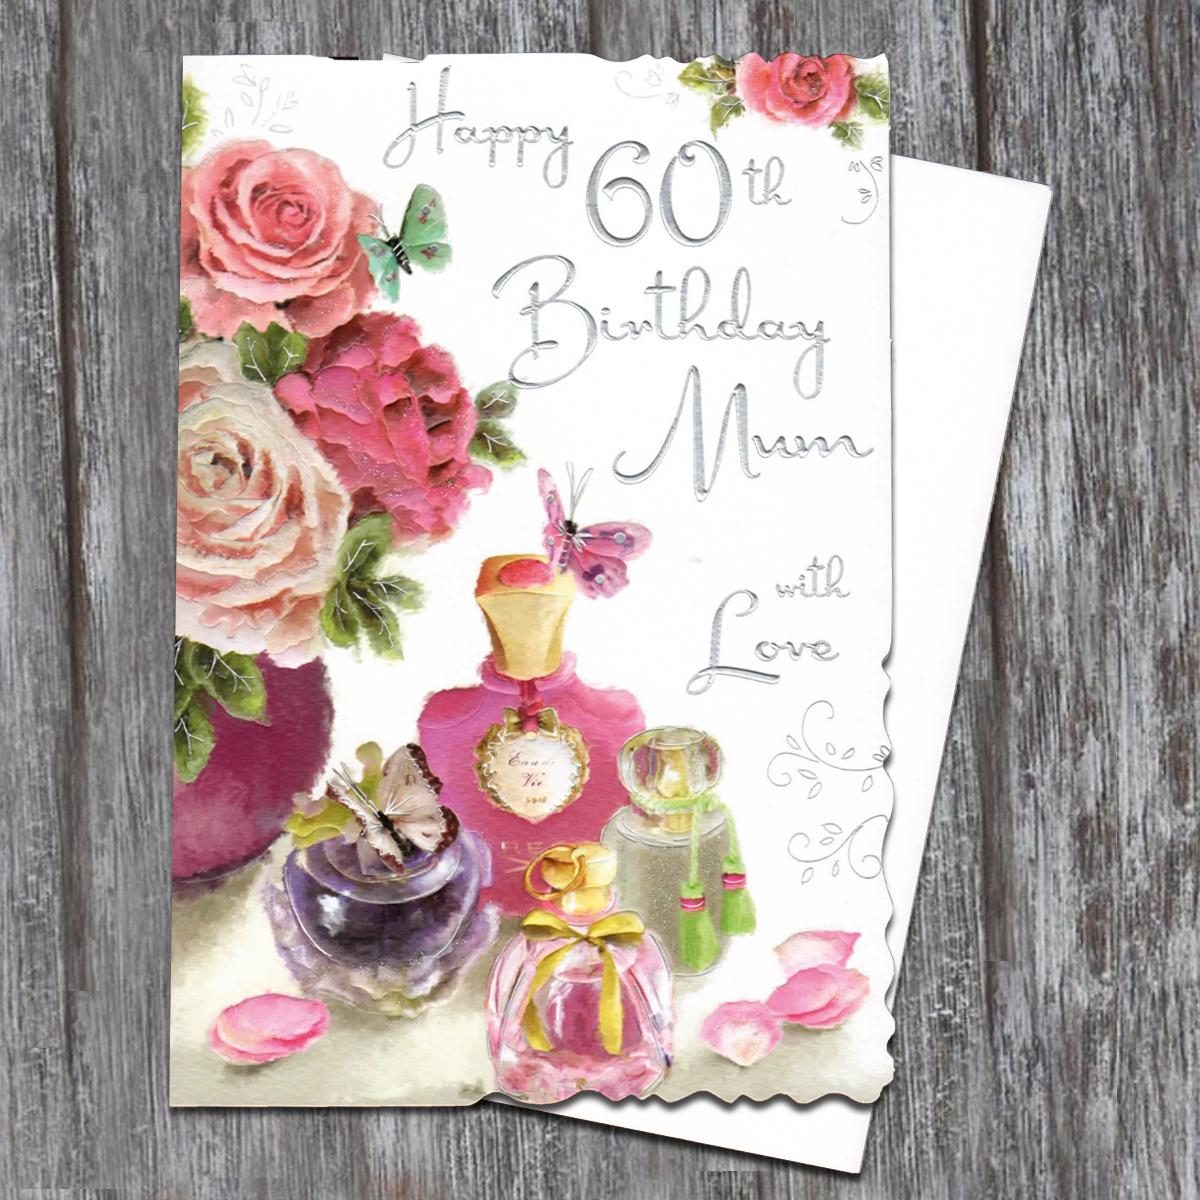 Mum Age 60 Birthday Card Alongside Its White Envelope